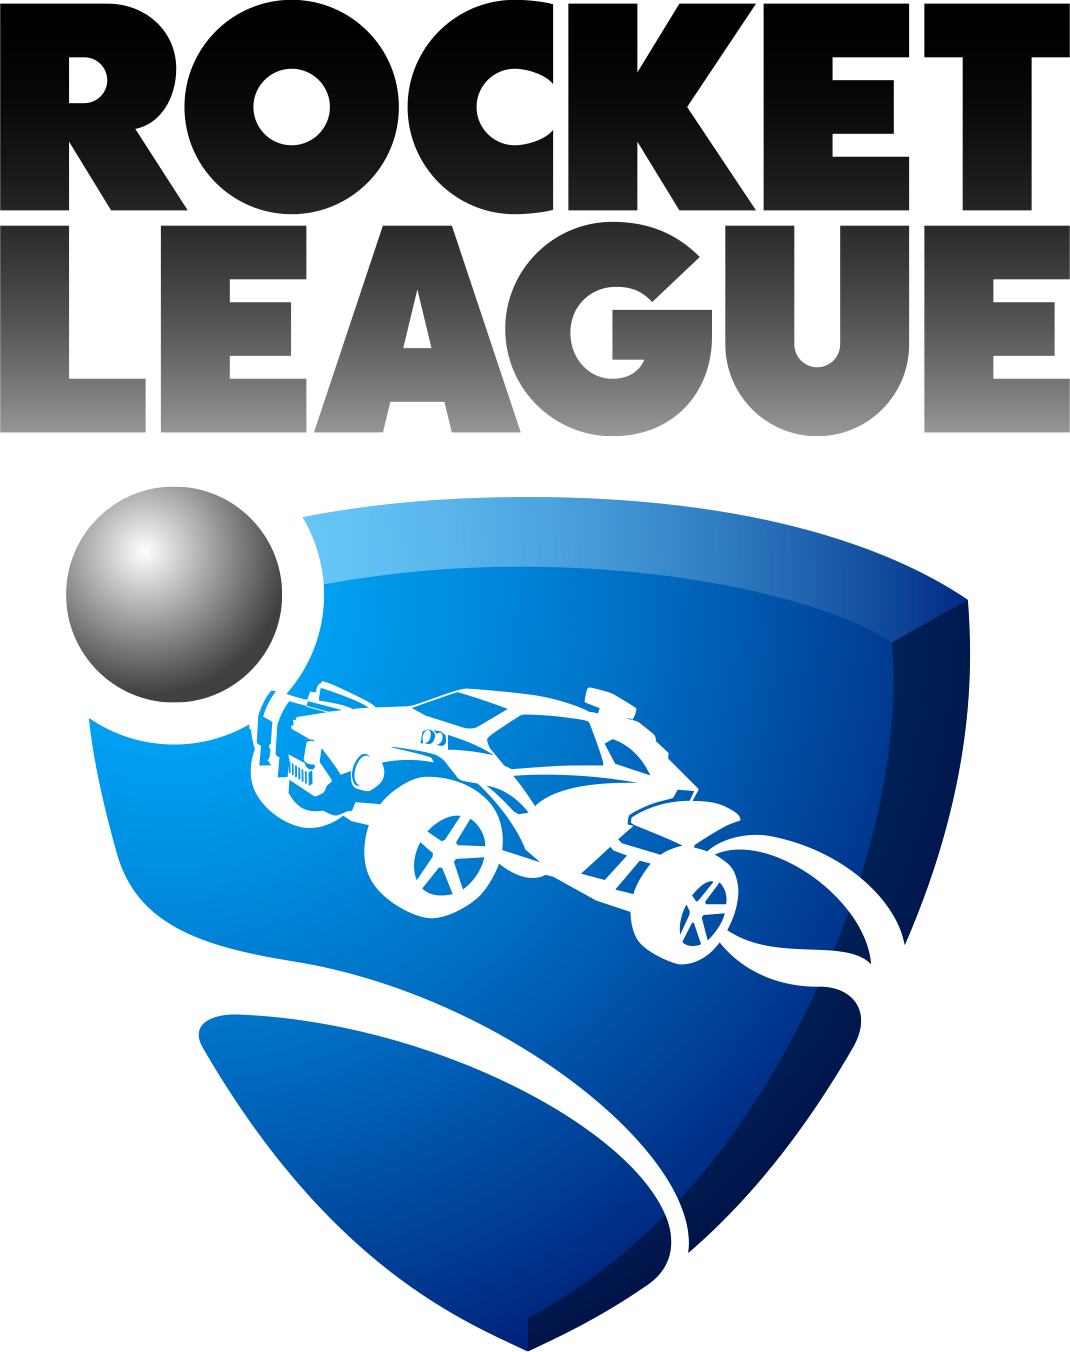 LOGO-Rocket-League-VT-on-White